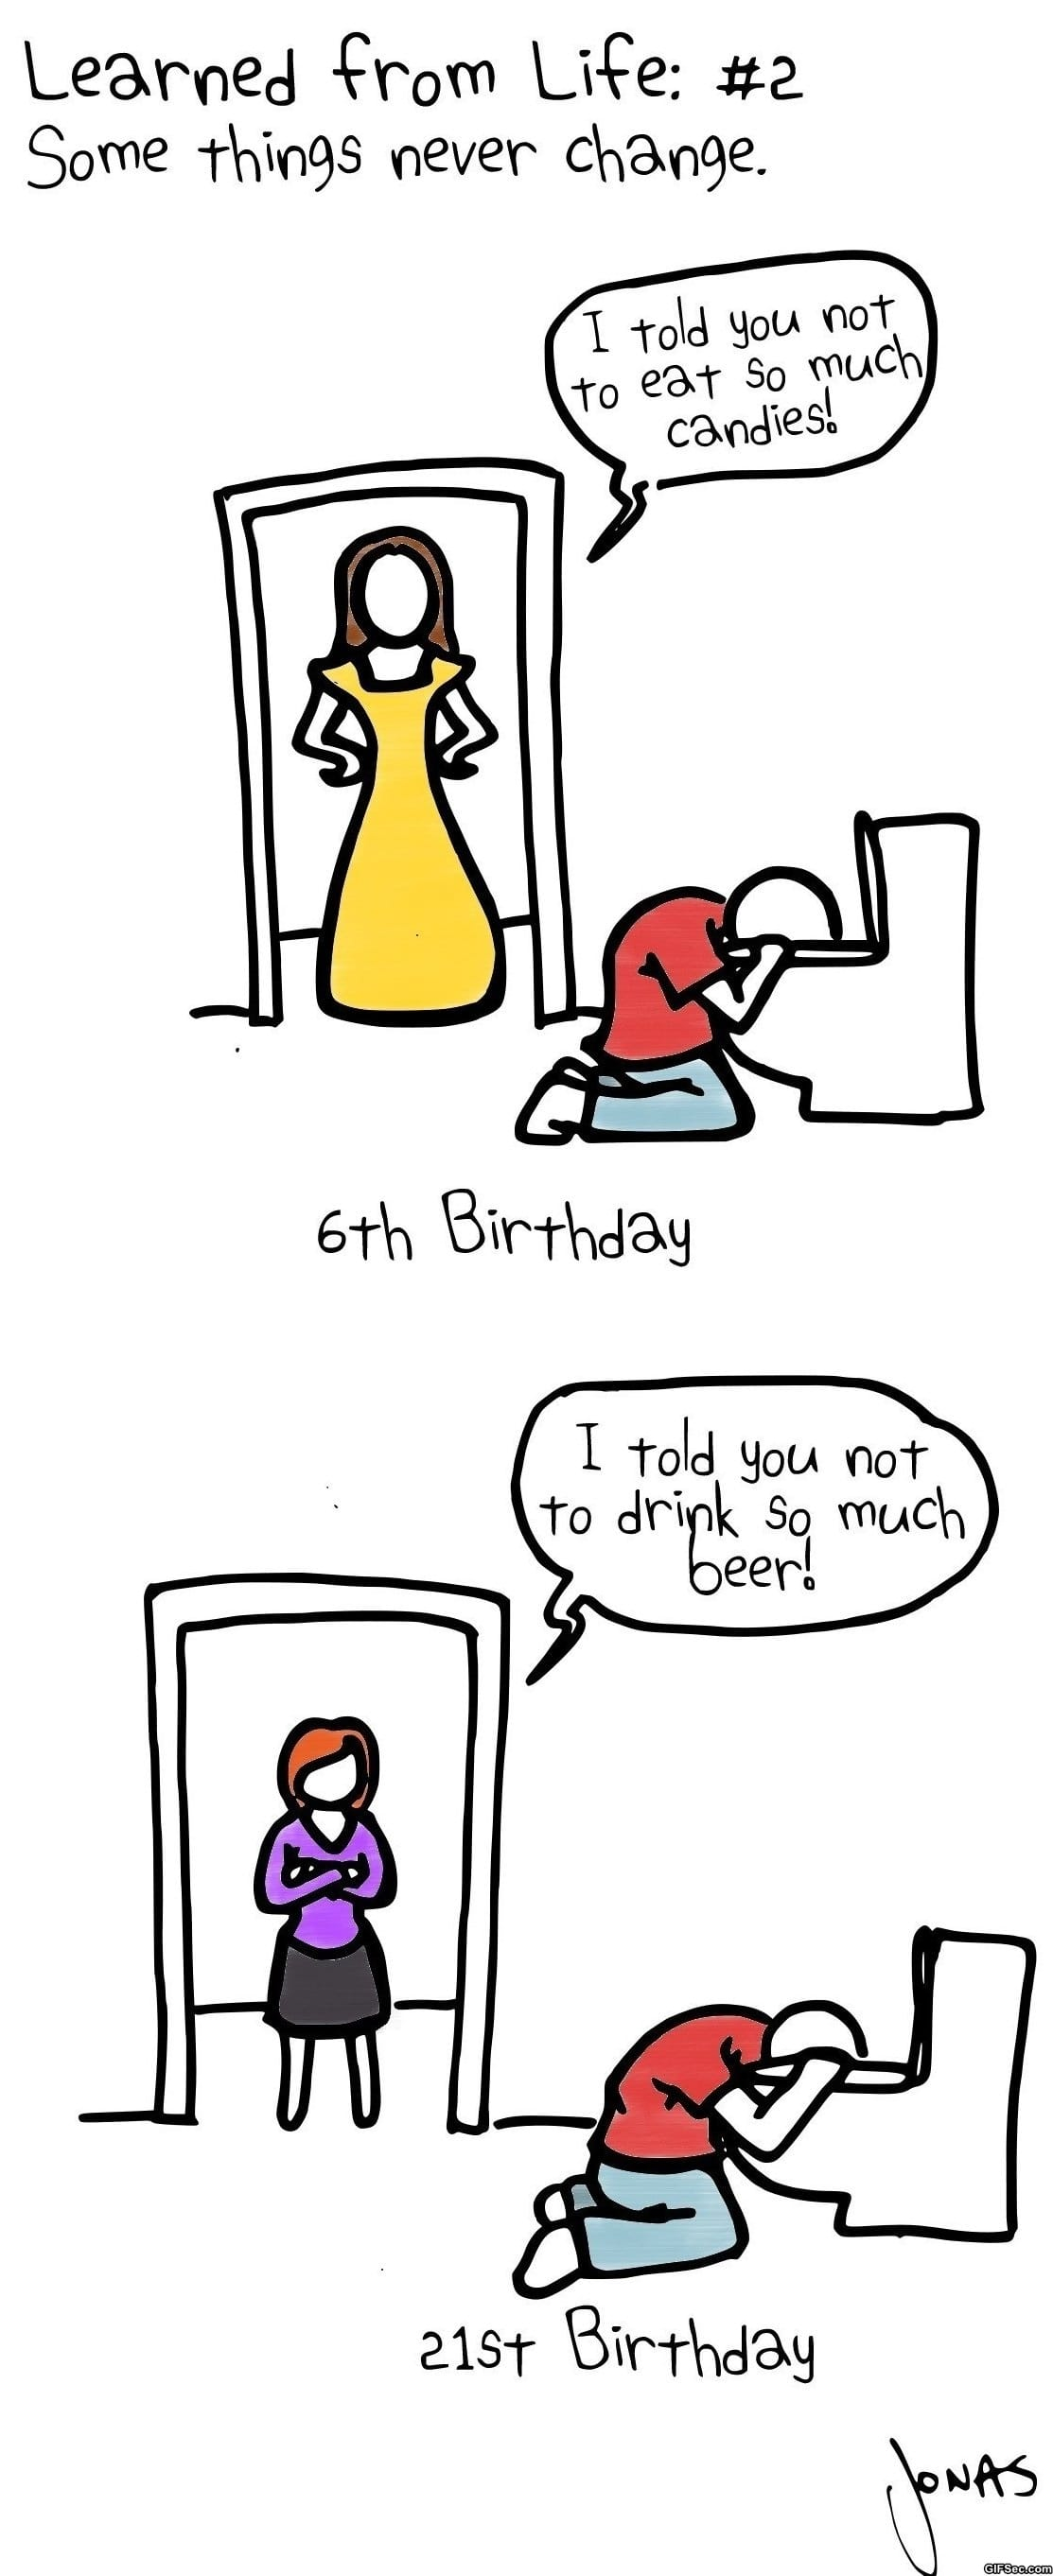 funny-pictures-learned-from-life